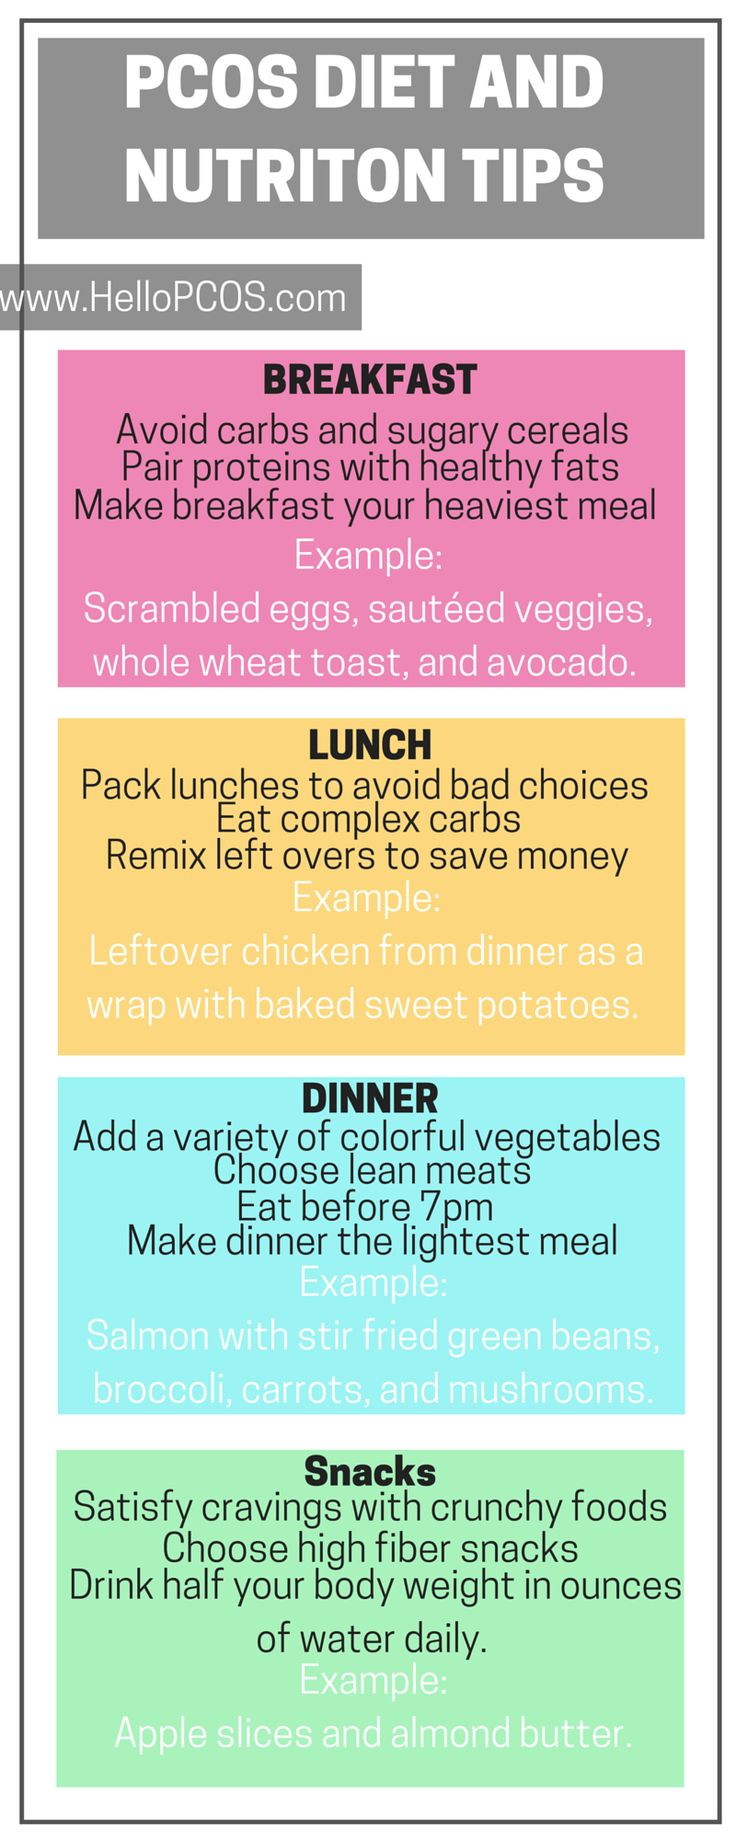 PCOS DIET AND NUTRITION TIPS | Are you participating in the 7 day clean eating challenge? Are you looking to clean up your PCOS Diet? Scroll down to find tips on eating clean with PCOS, staple foods you should have, and plenty of free printables.